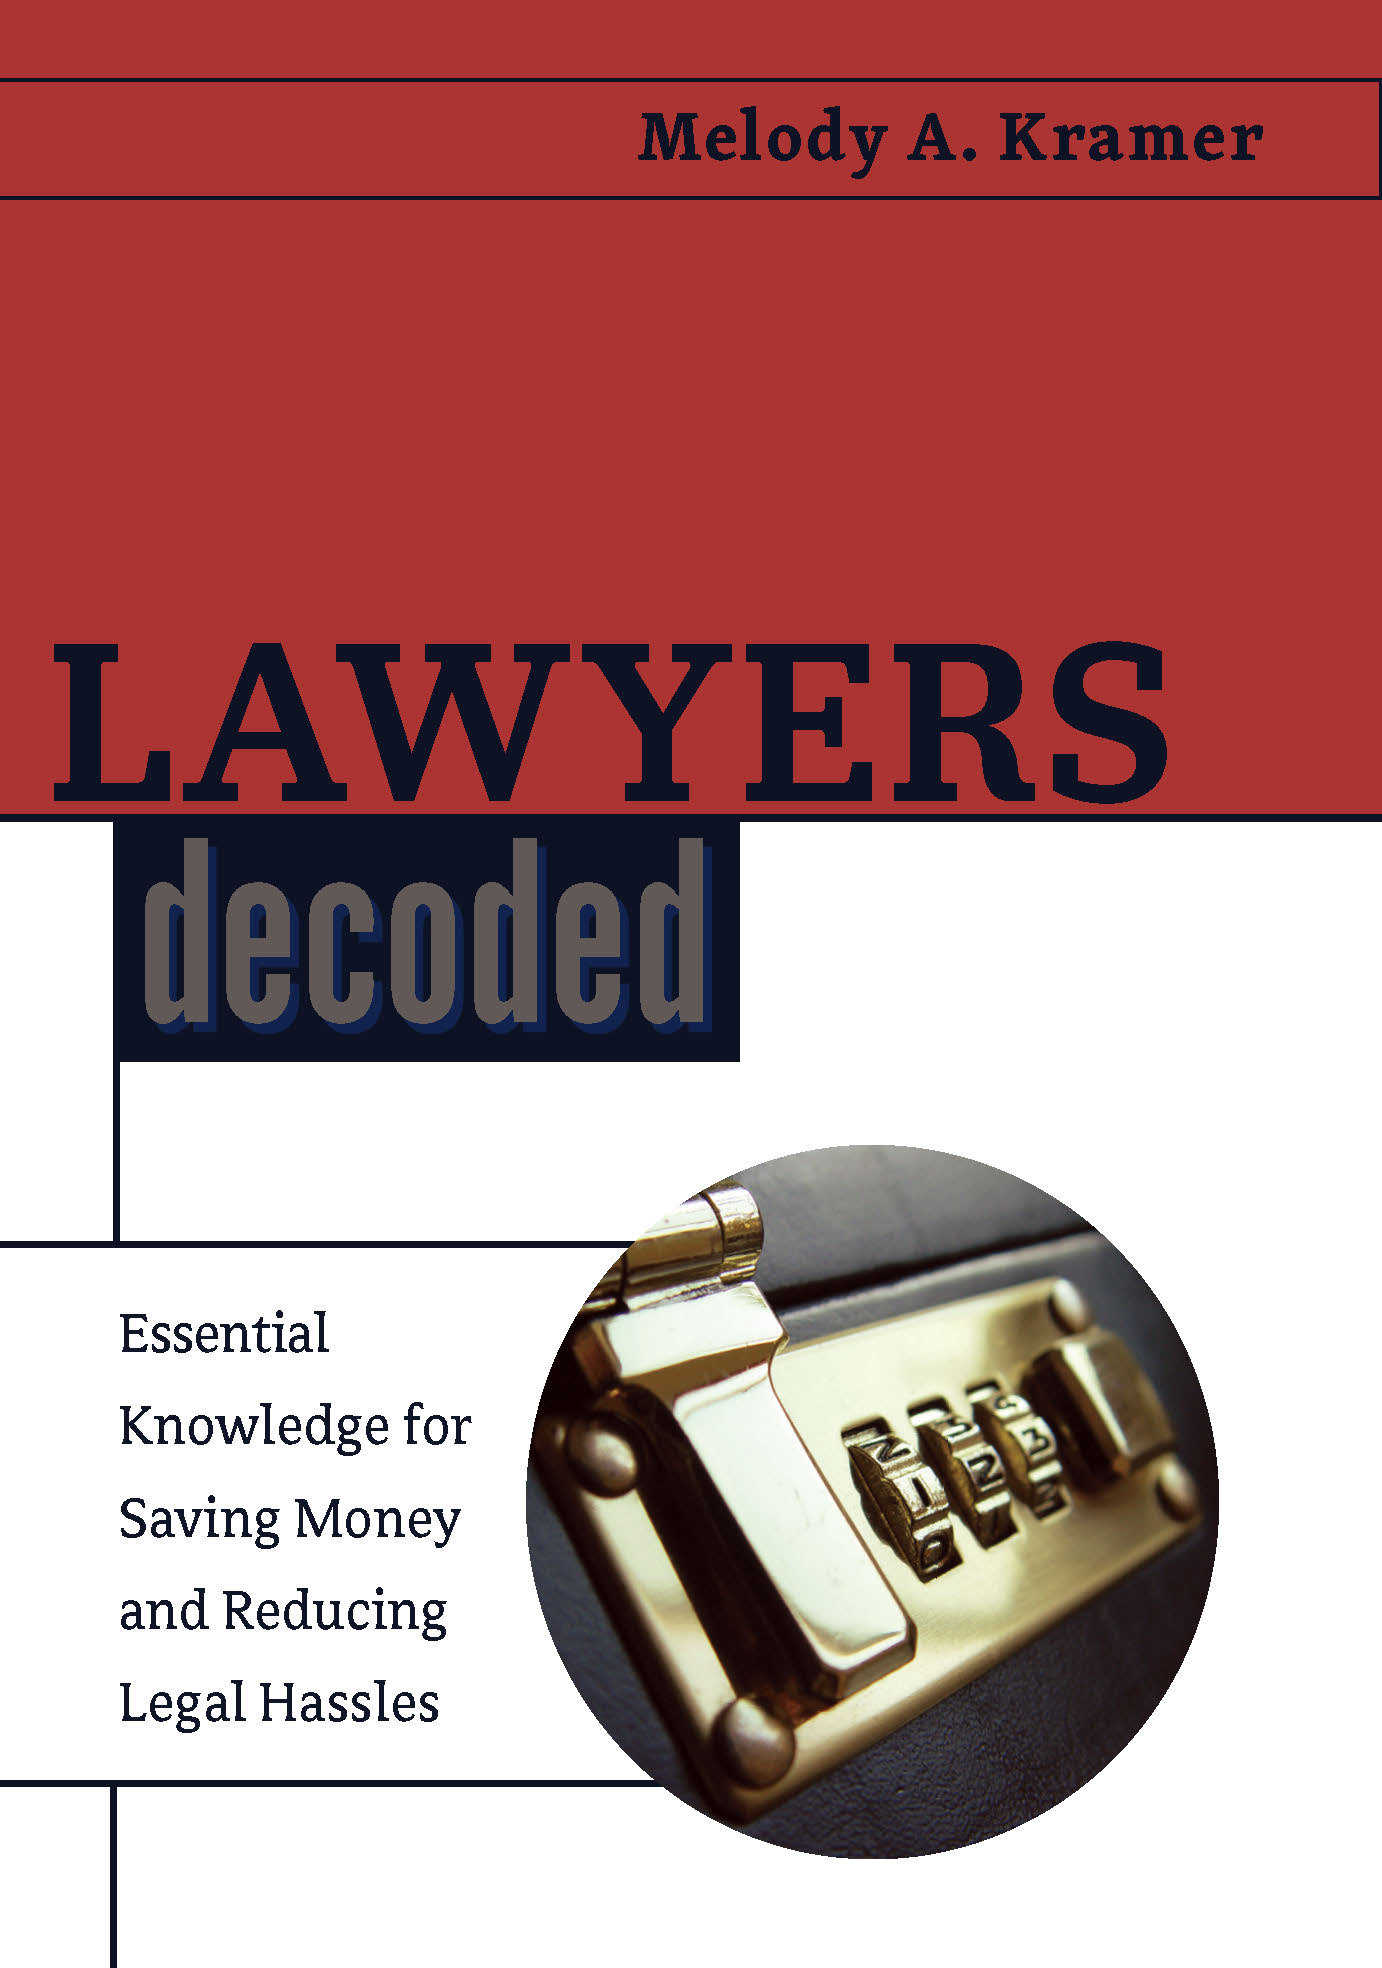 Melody Kramer Lawyers Decoded front cover.jpg